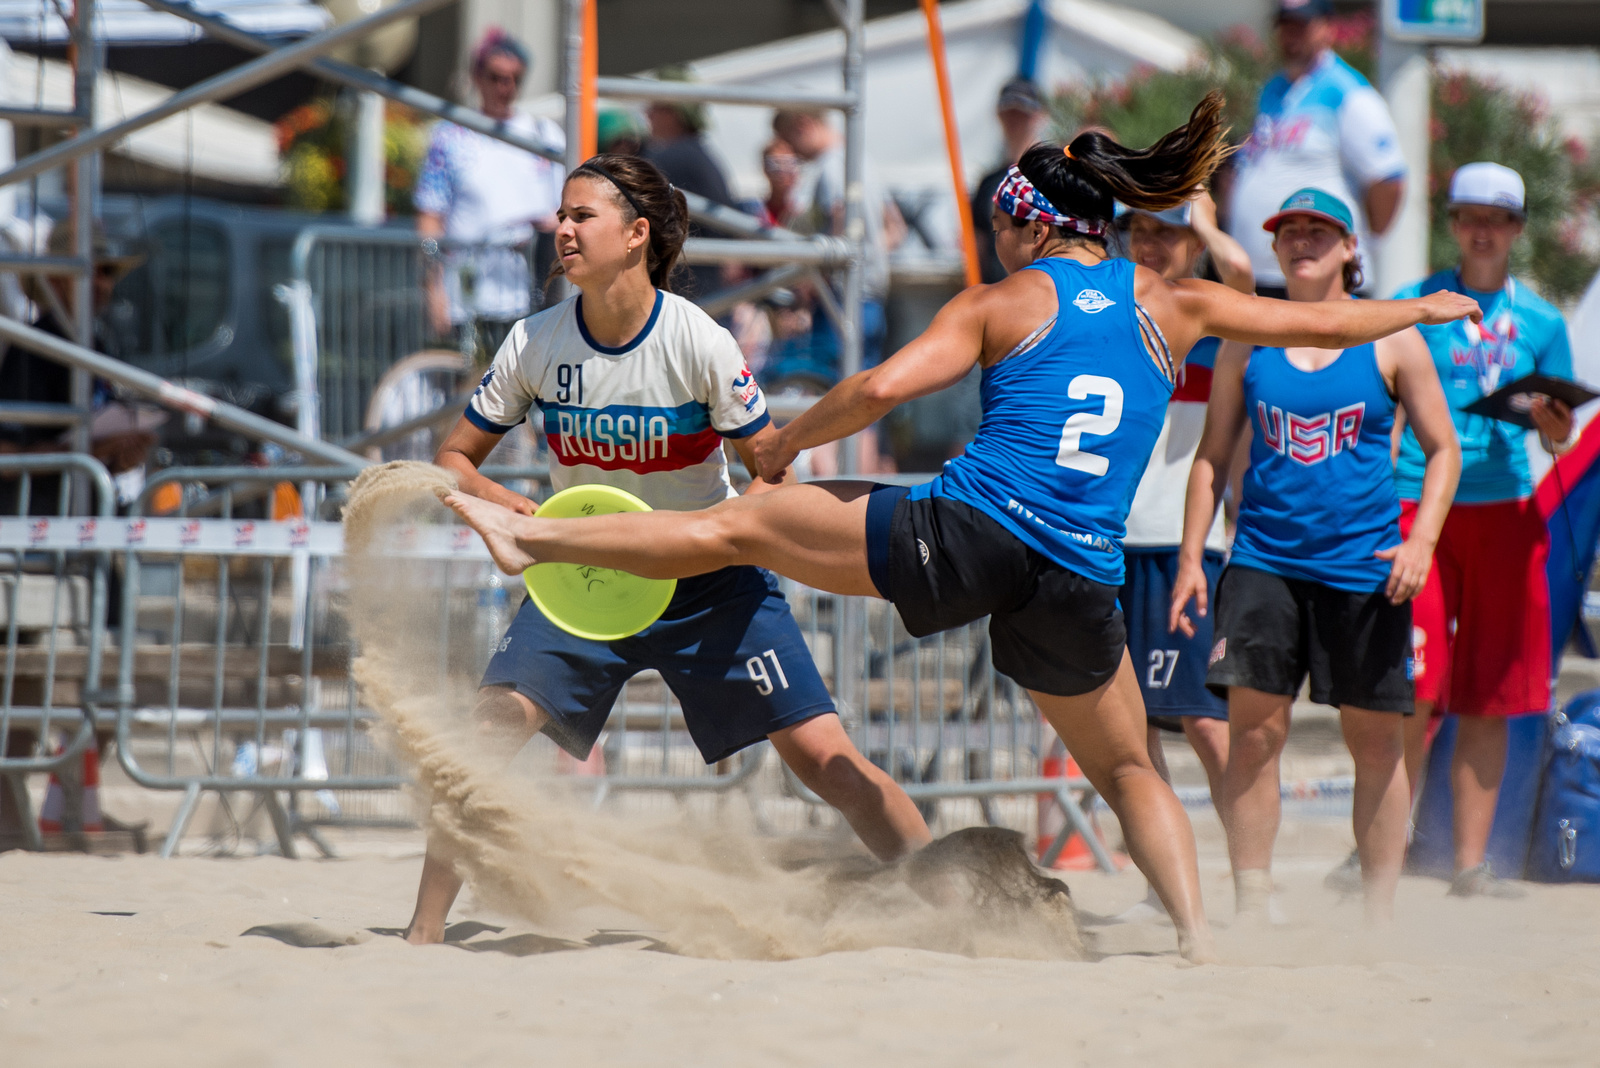 Video Thumbnail: 2017 World Championships of Beach Ultimate, Women's Gold Medal Game: USA vs. Russia